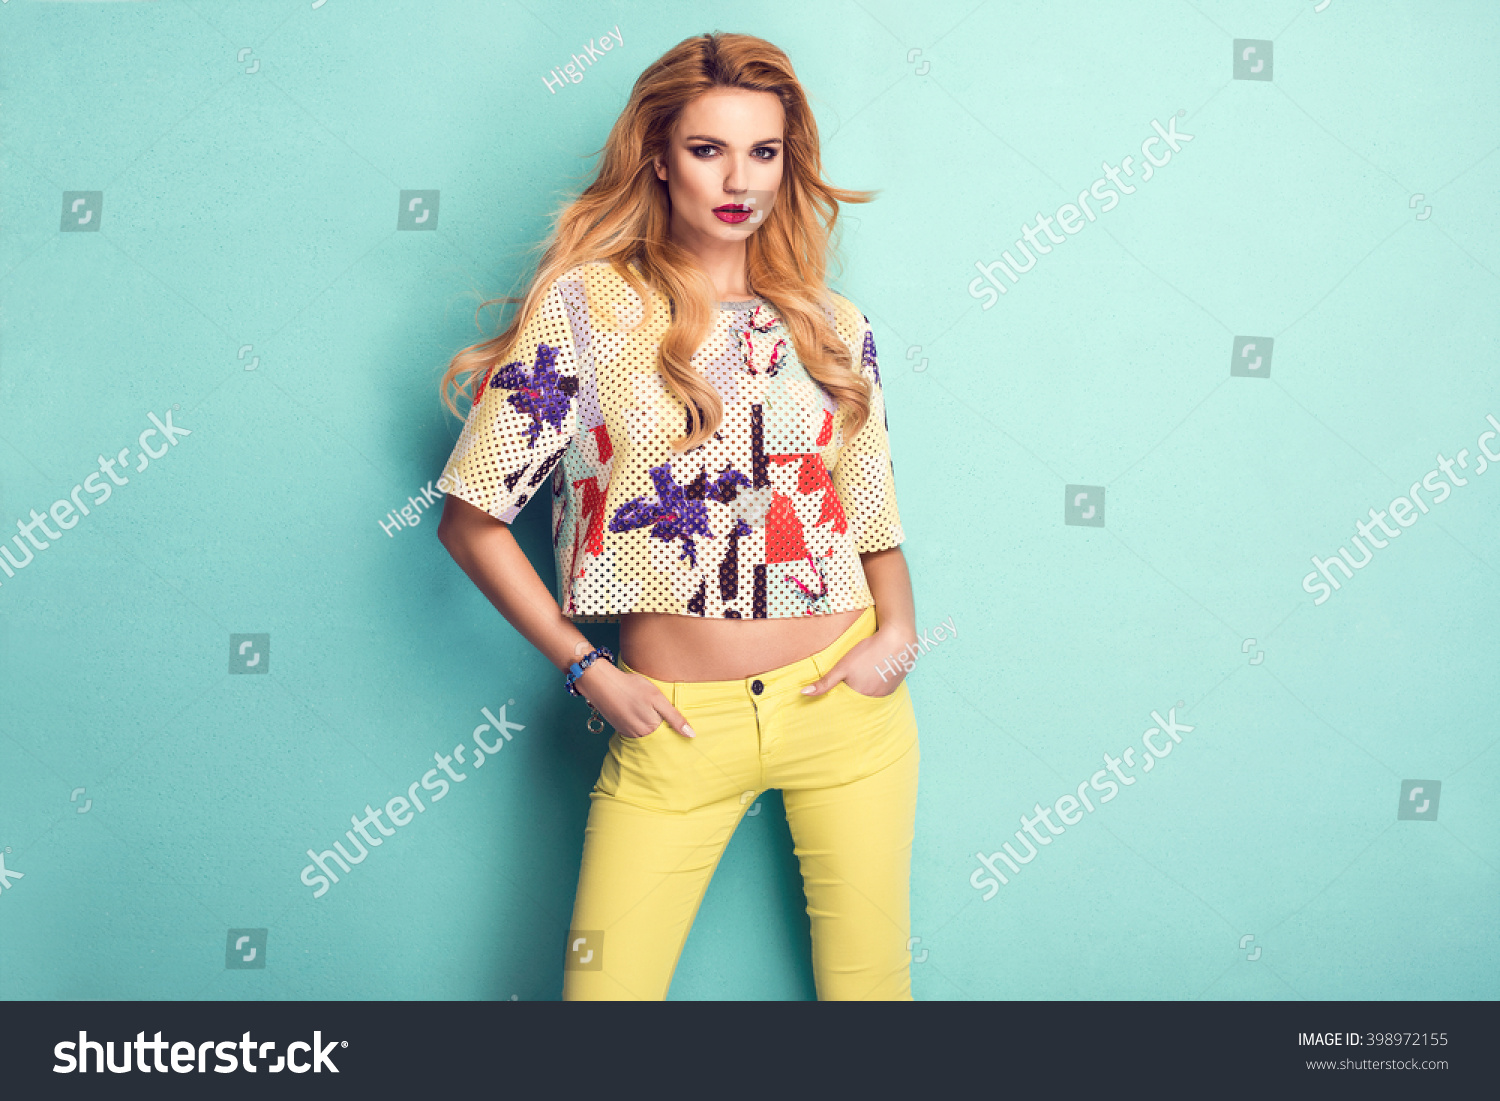 Beautiful woman wearing nice clothes handbag posing on turquoise background Fashion spring photo Bright colors